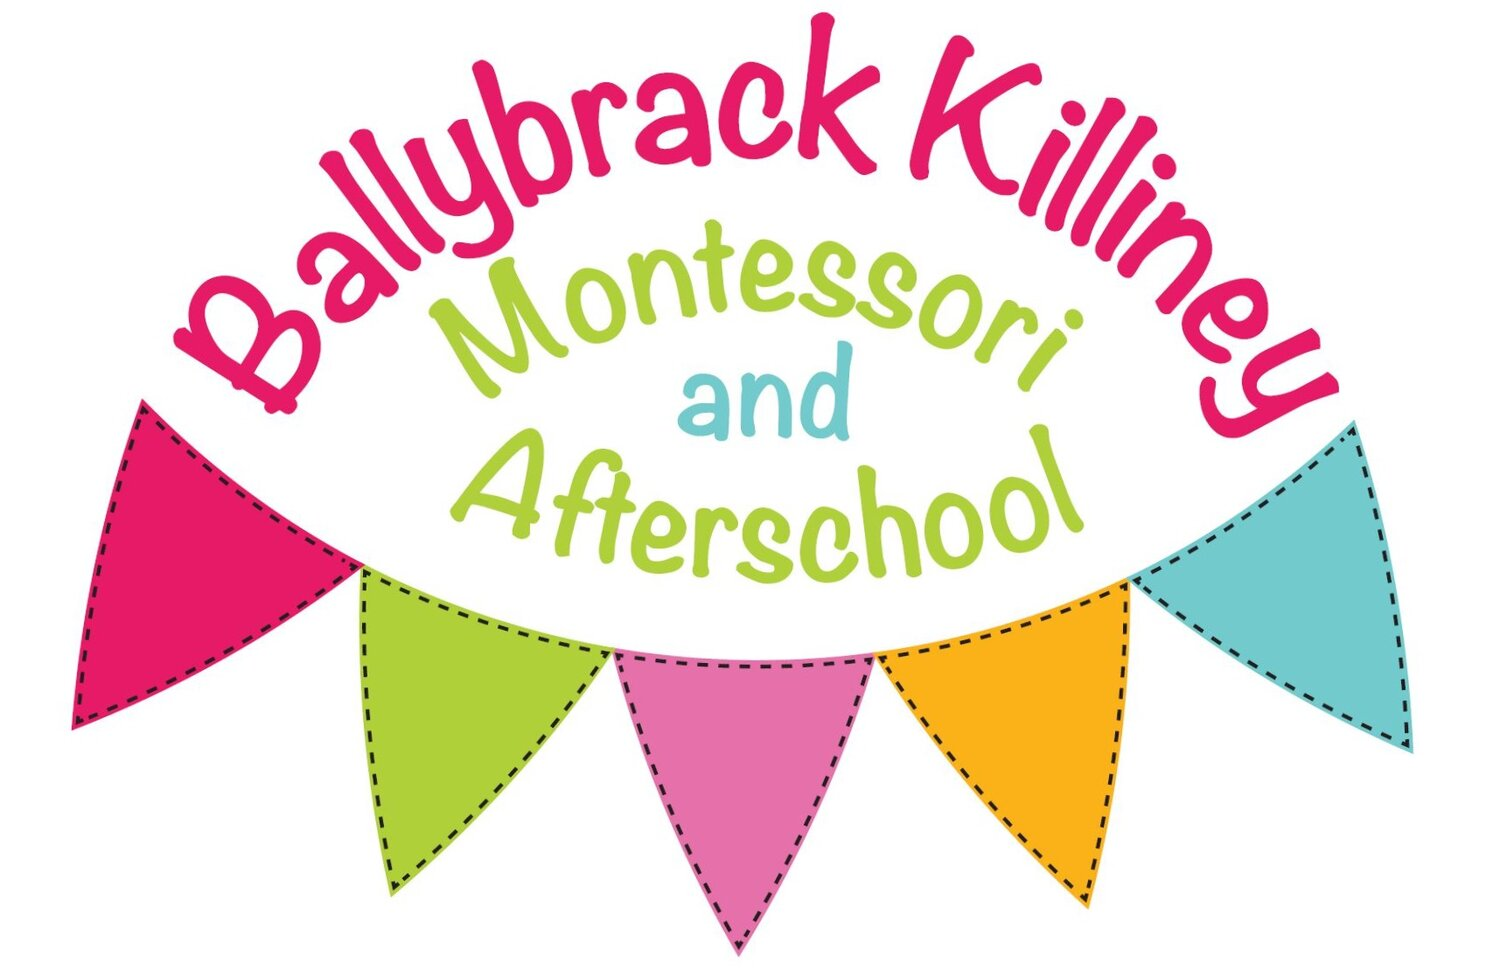 Ballybrack Killiney Montessori & Afterschool